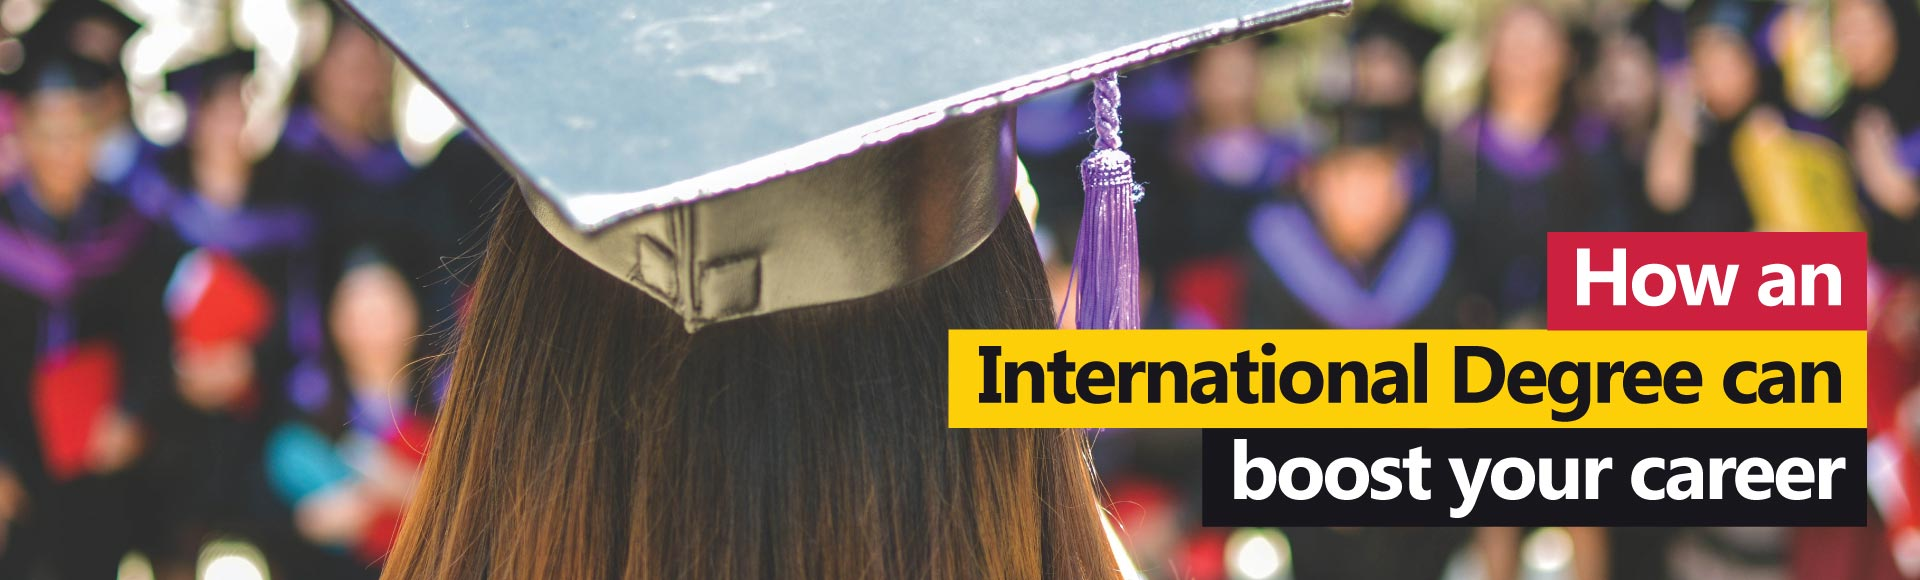 How an International Degree can boost your career?